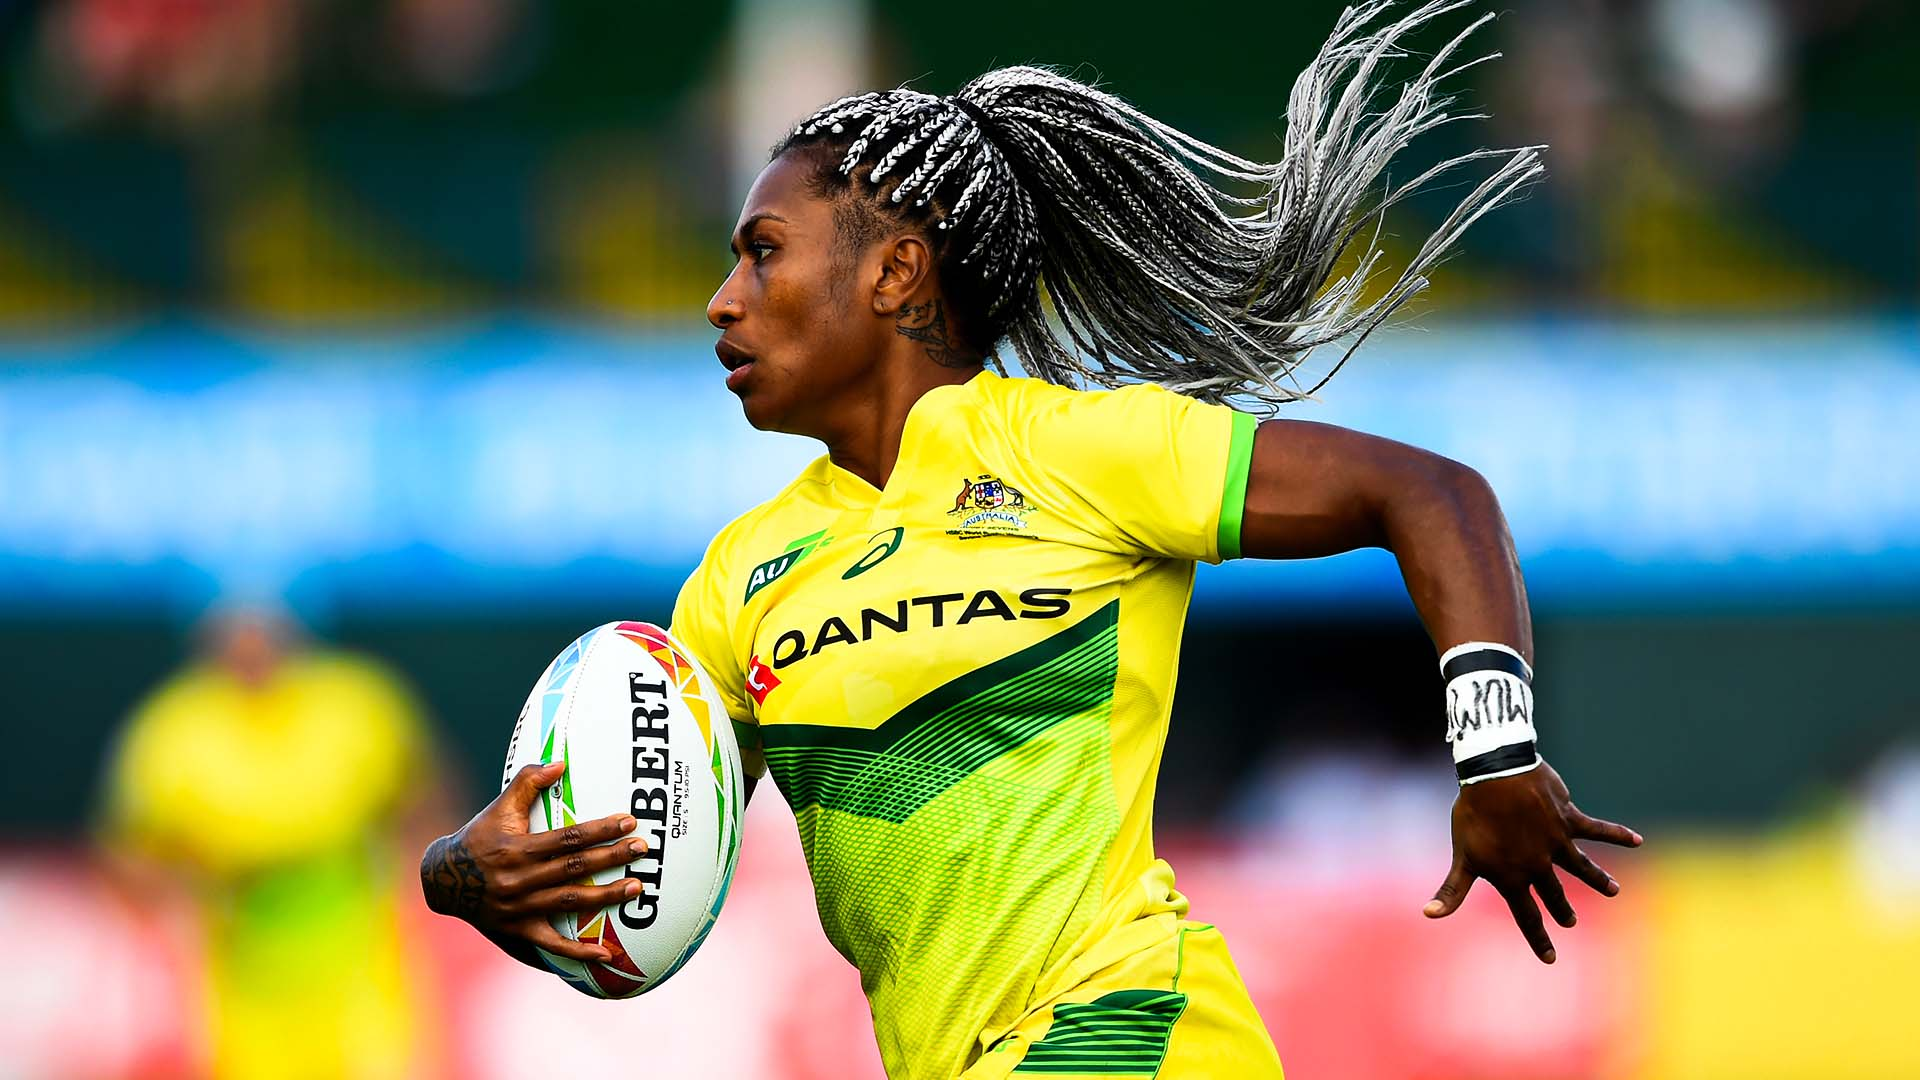 Australian HSBC Rugby Sevens playing running with the ball